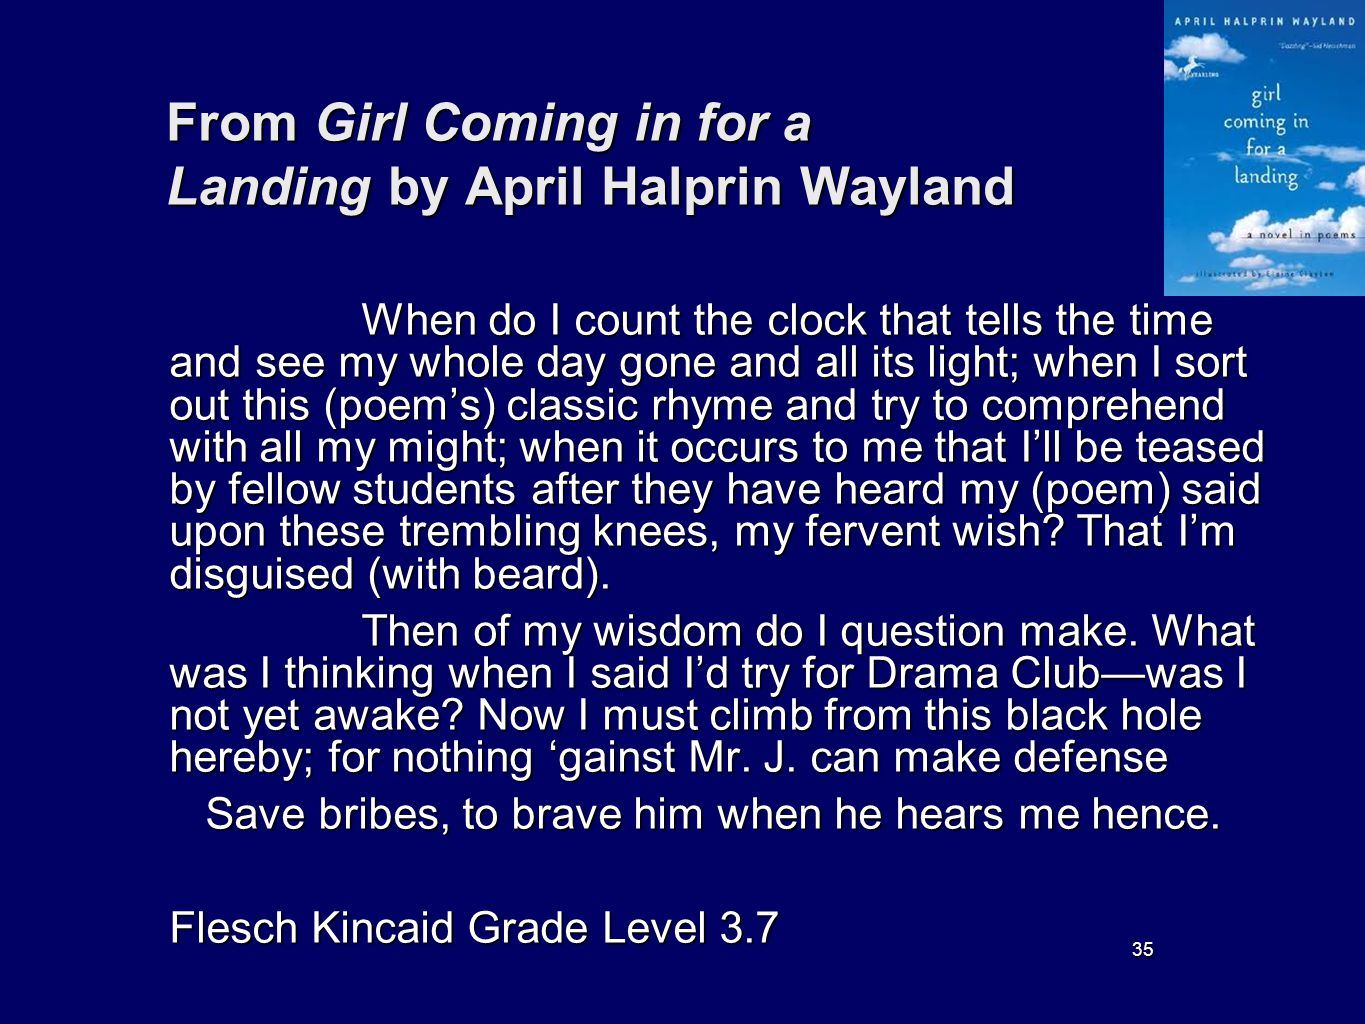 35 From Girl Coming in for a Landing by April Halprin Wayland When do I count the clock that tells the time and see my whole day gone and all its ligh